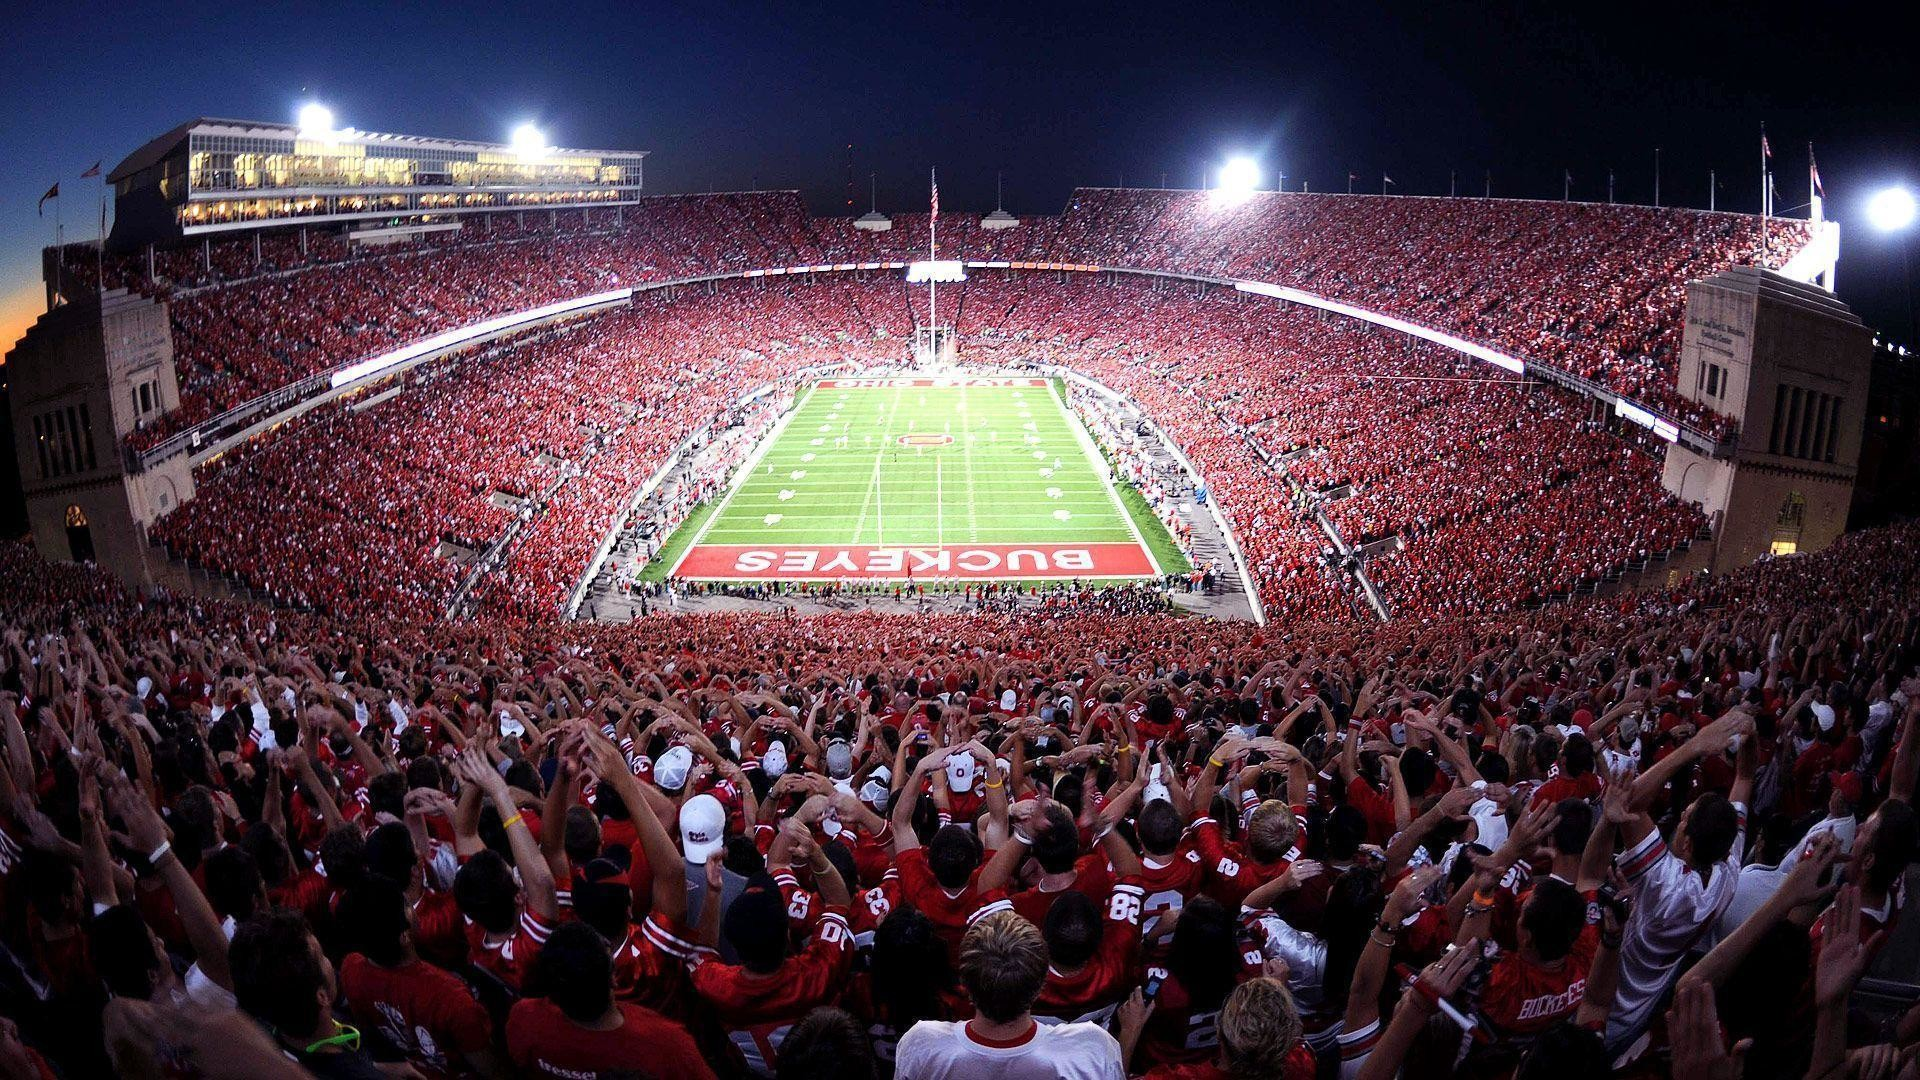 1920x1080 Ohio State Football Stadium Wallpaper